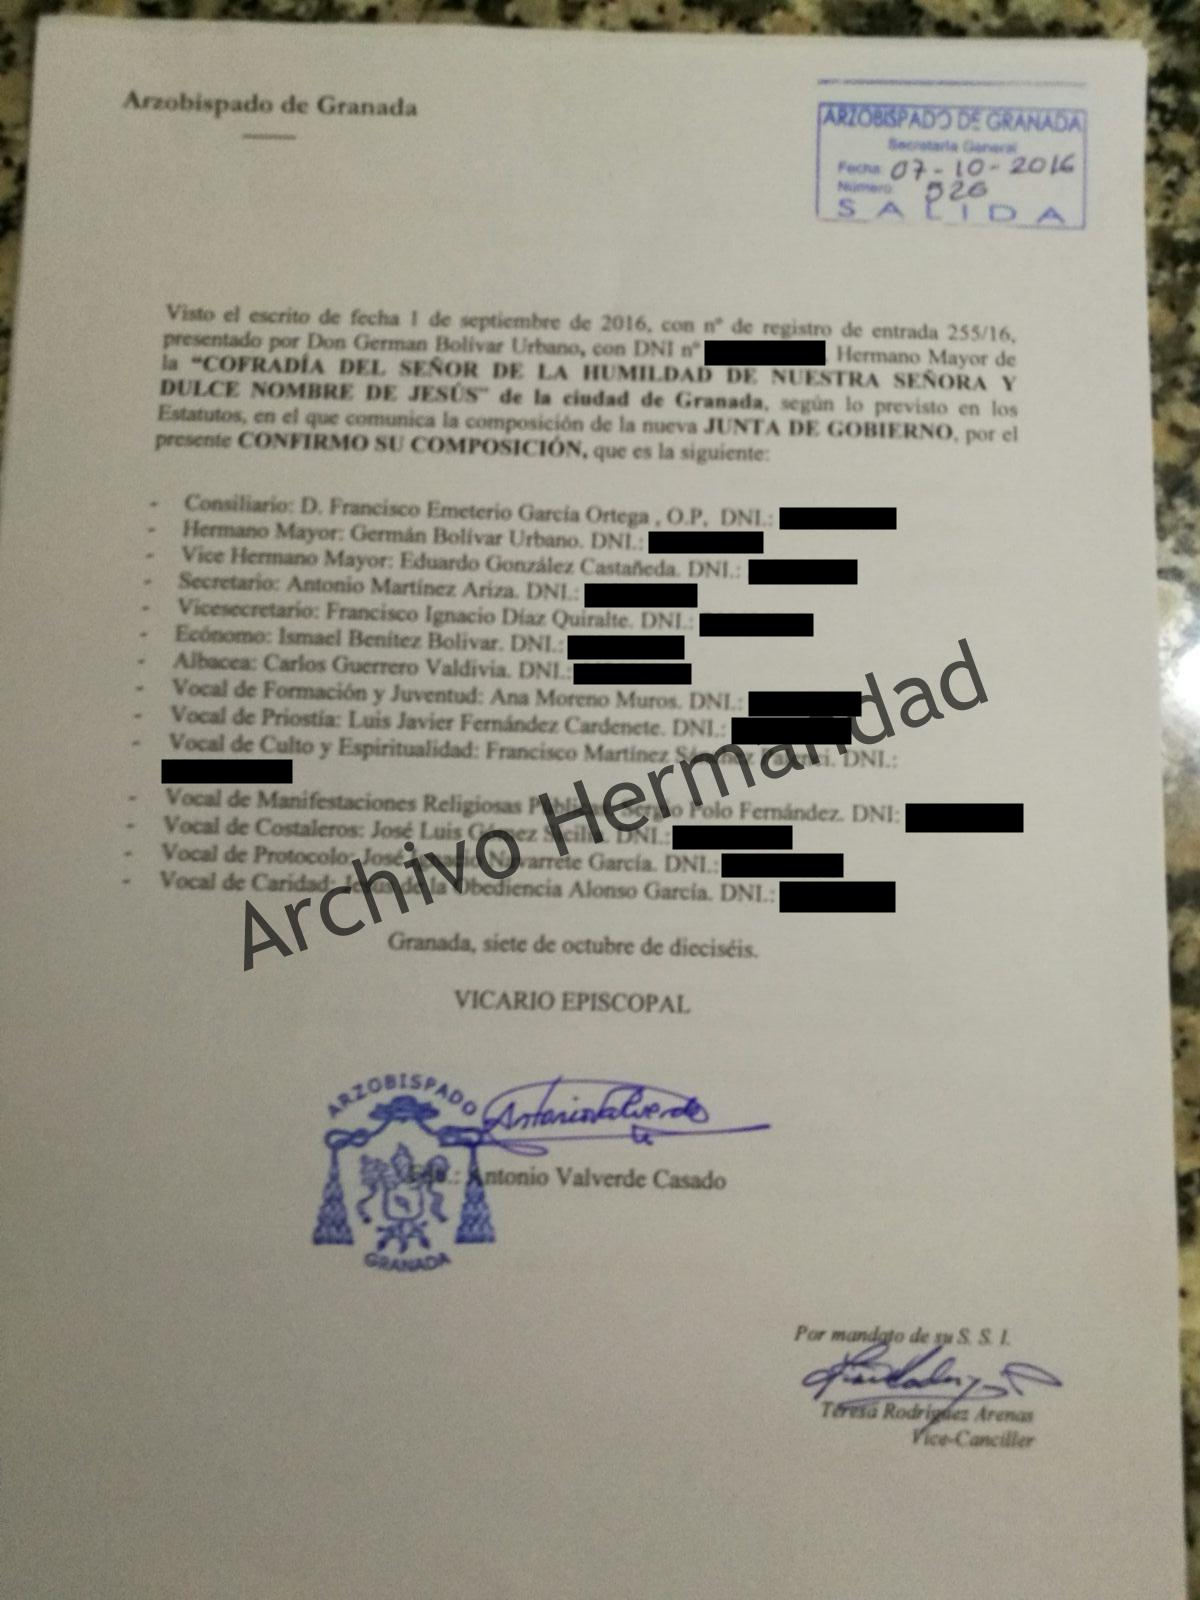 ratificacion-junta-de-gobierno-censurada